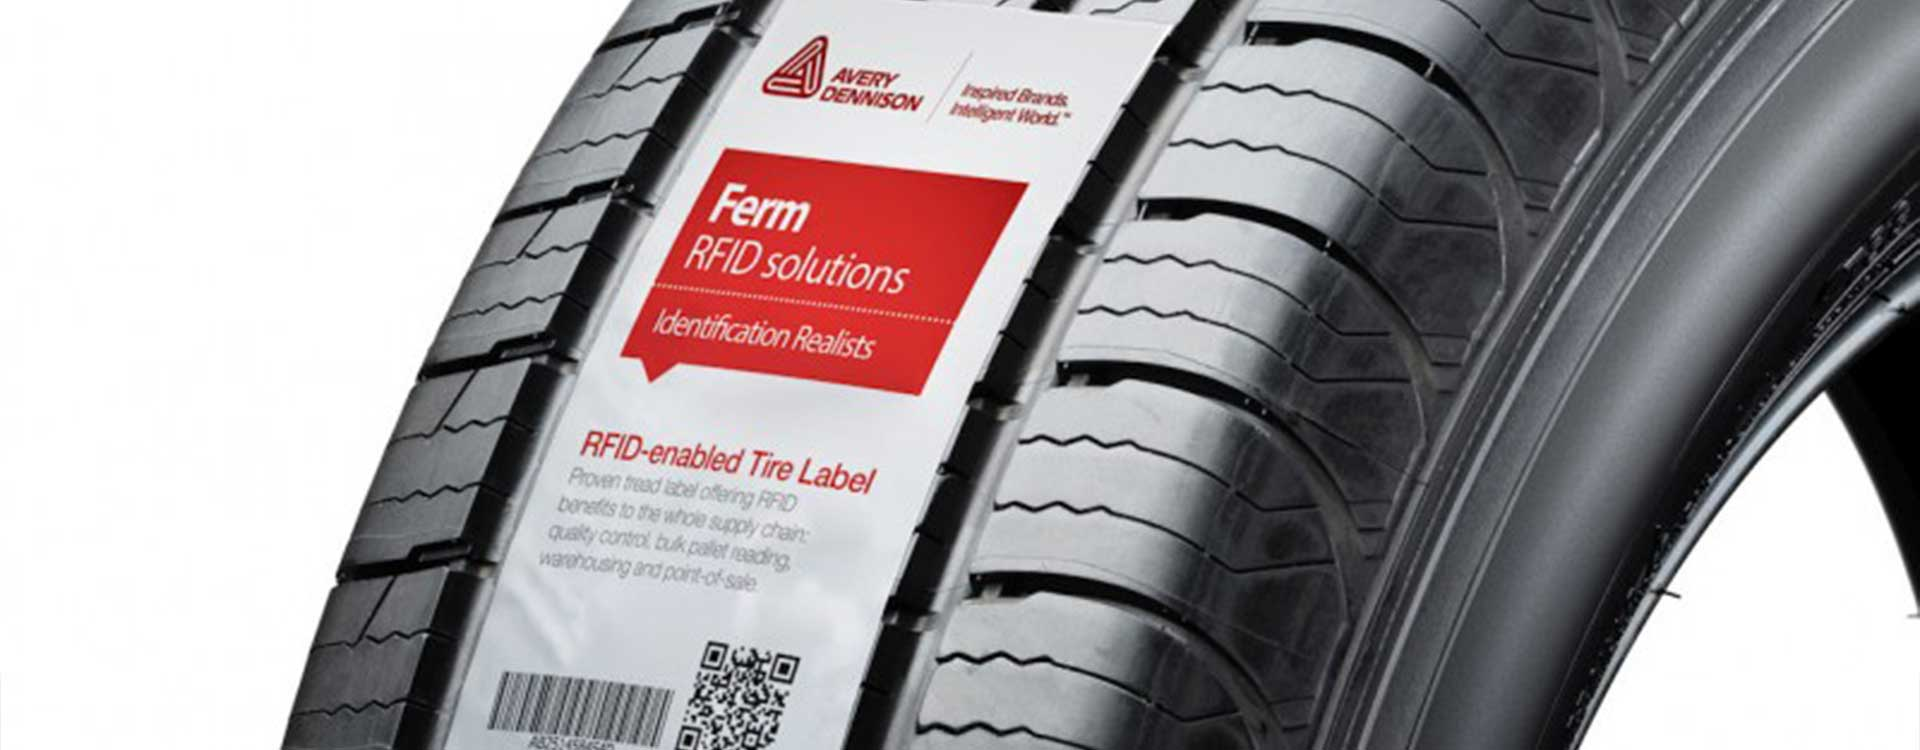 Tire industry on Track to Adopt Universal RFID Standard